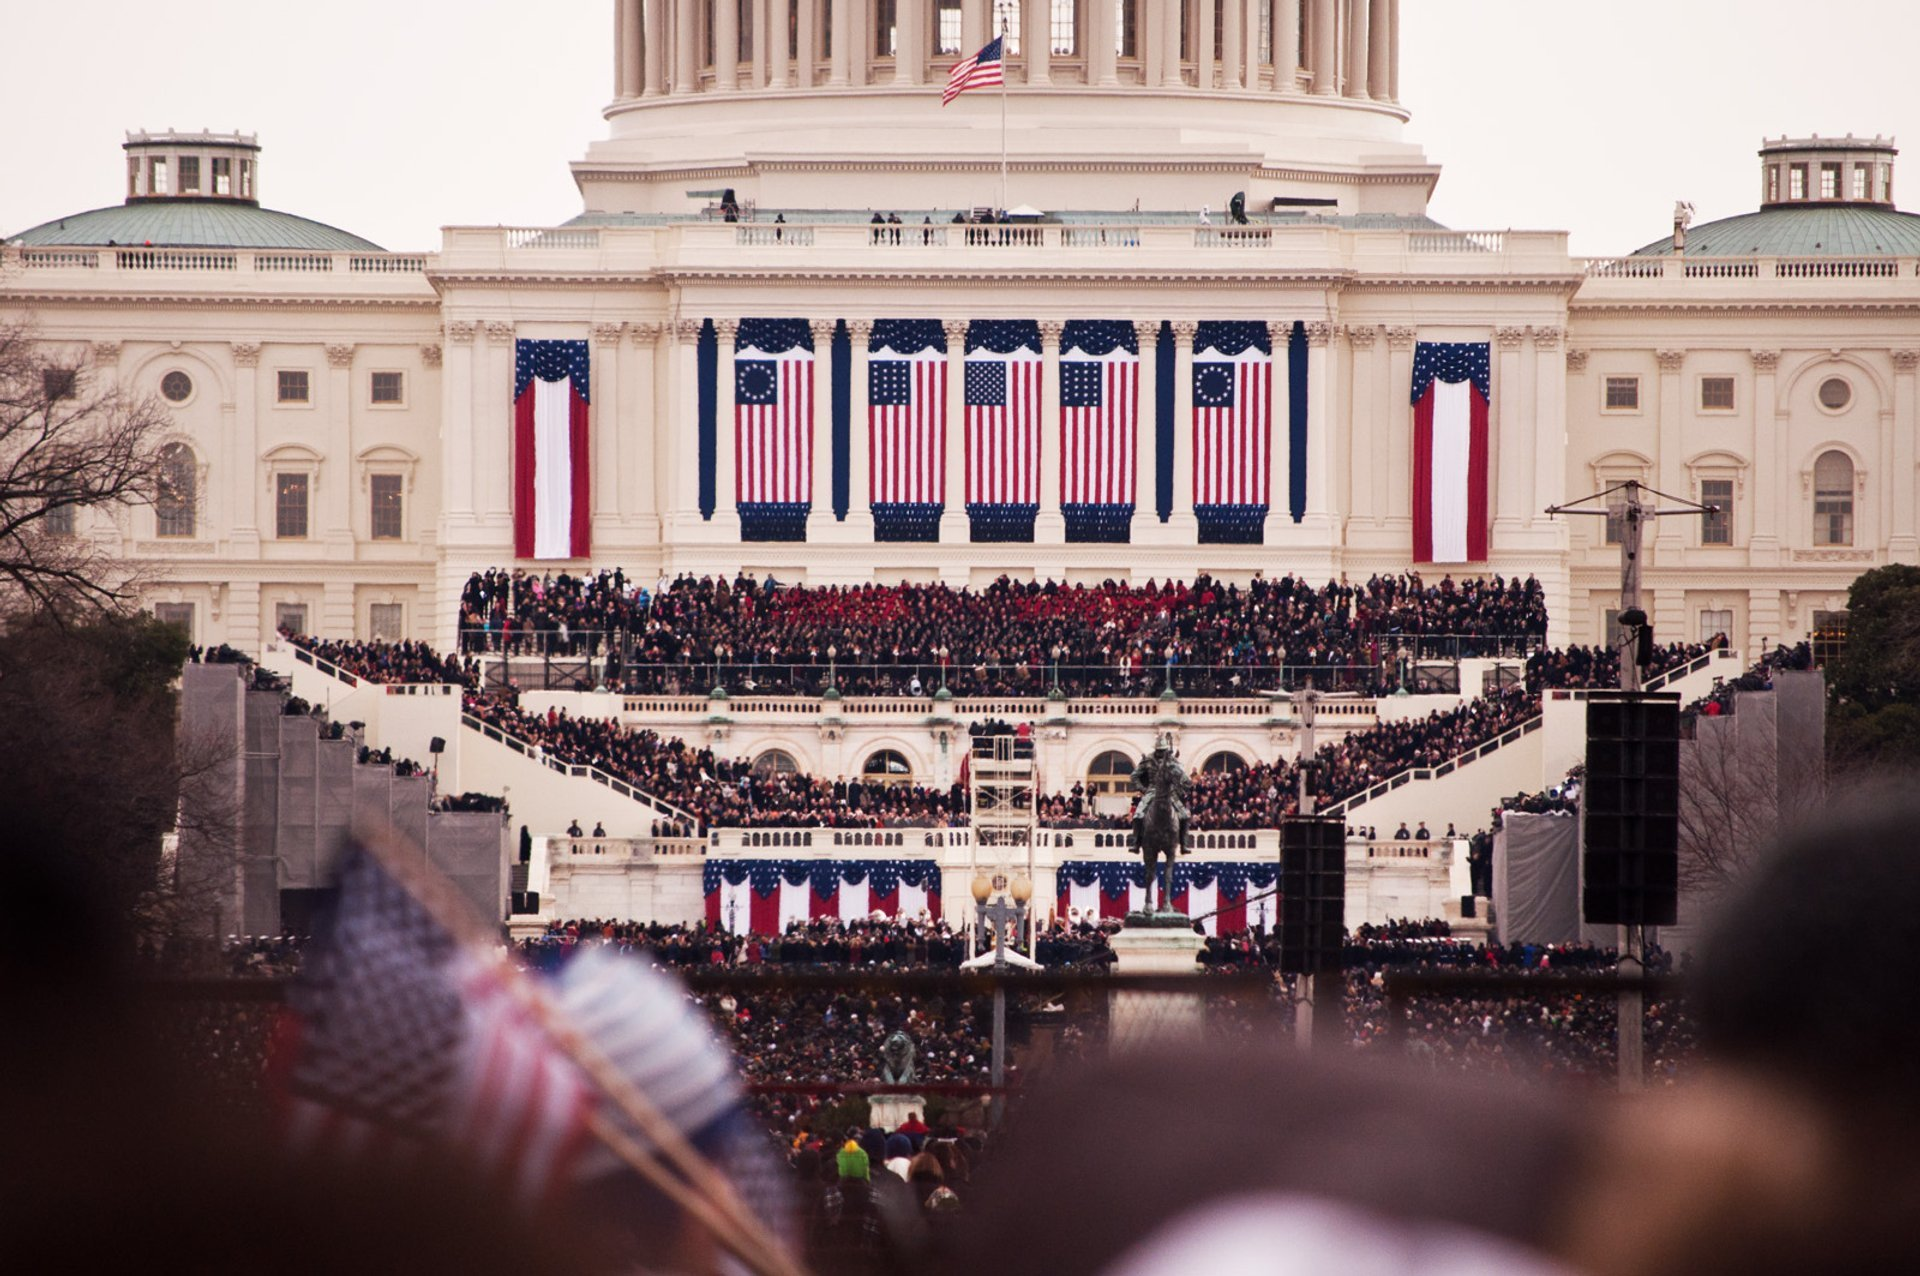 Presidential Inauguration in Washington, D.C. 2020 - Best Time